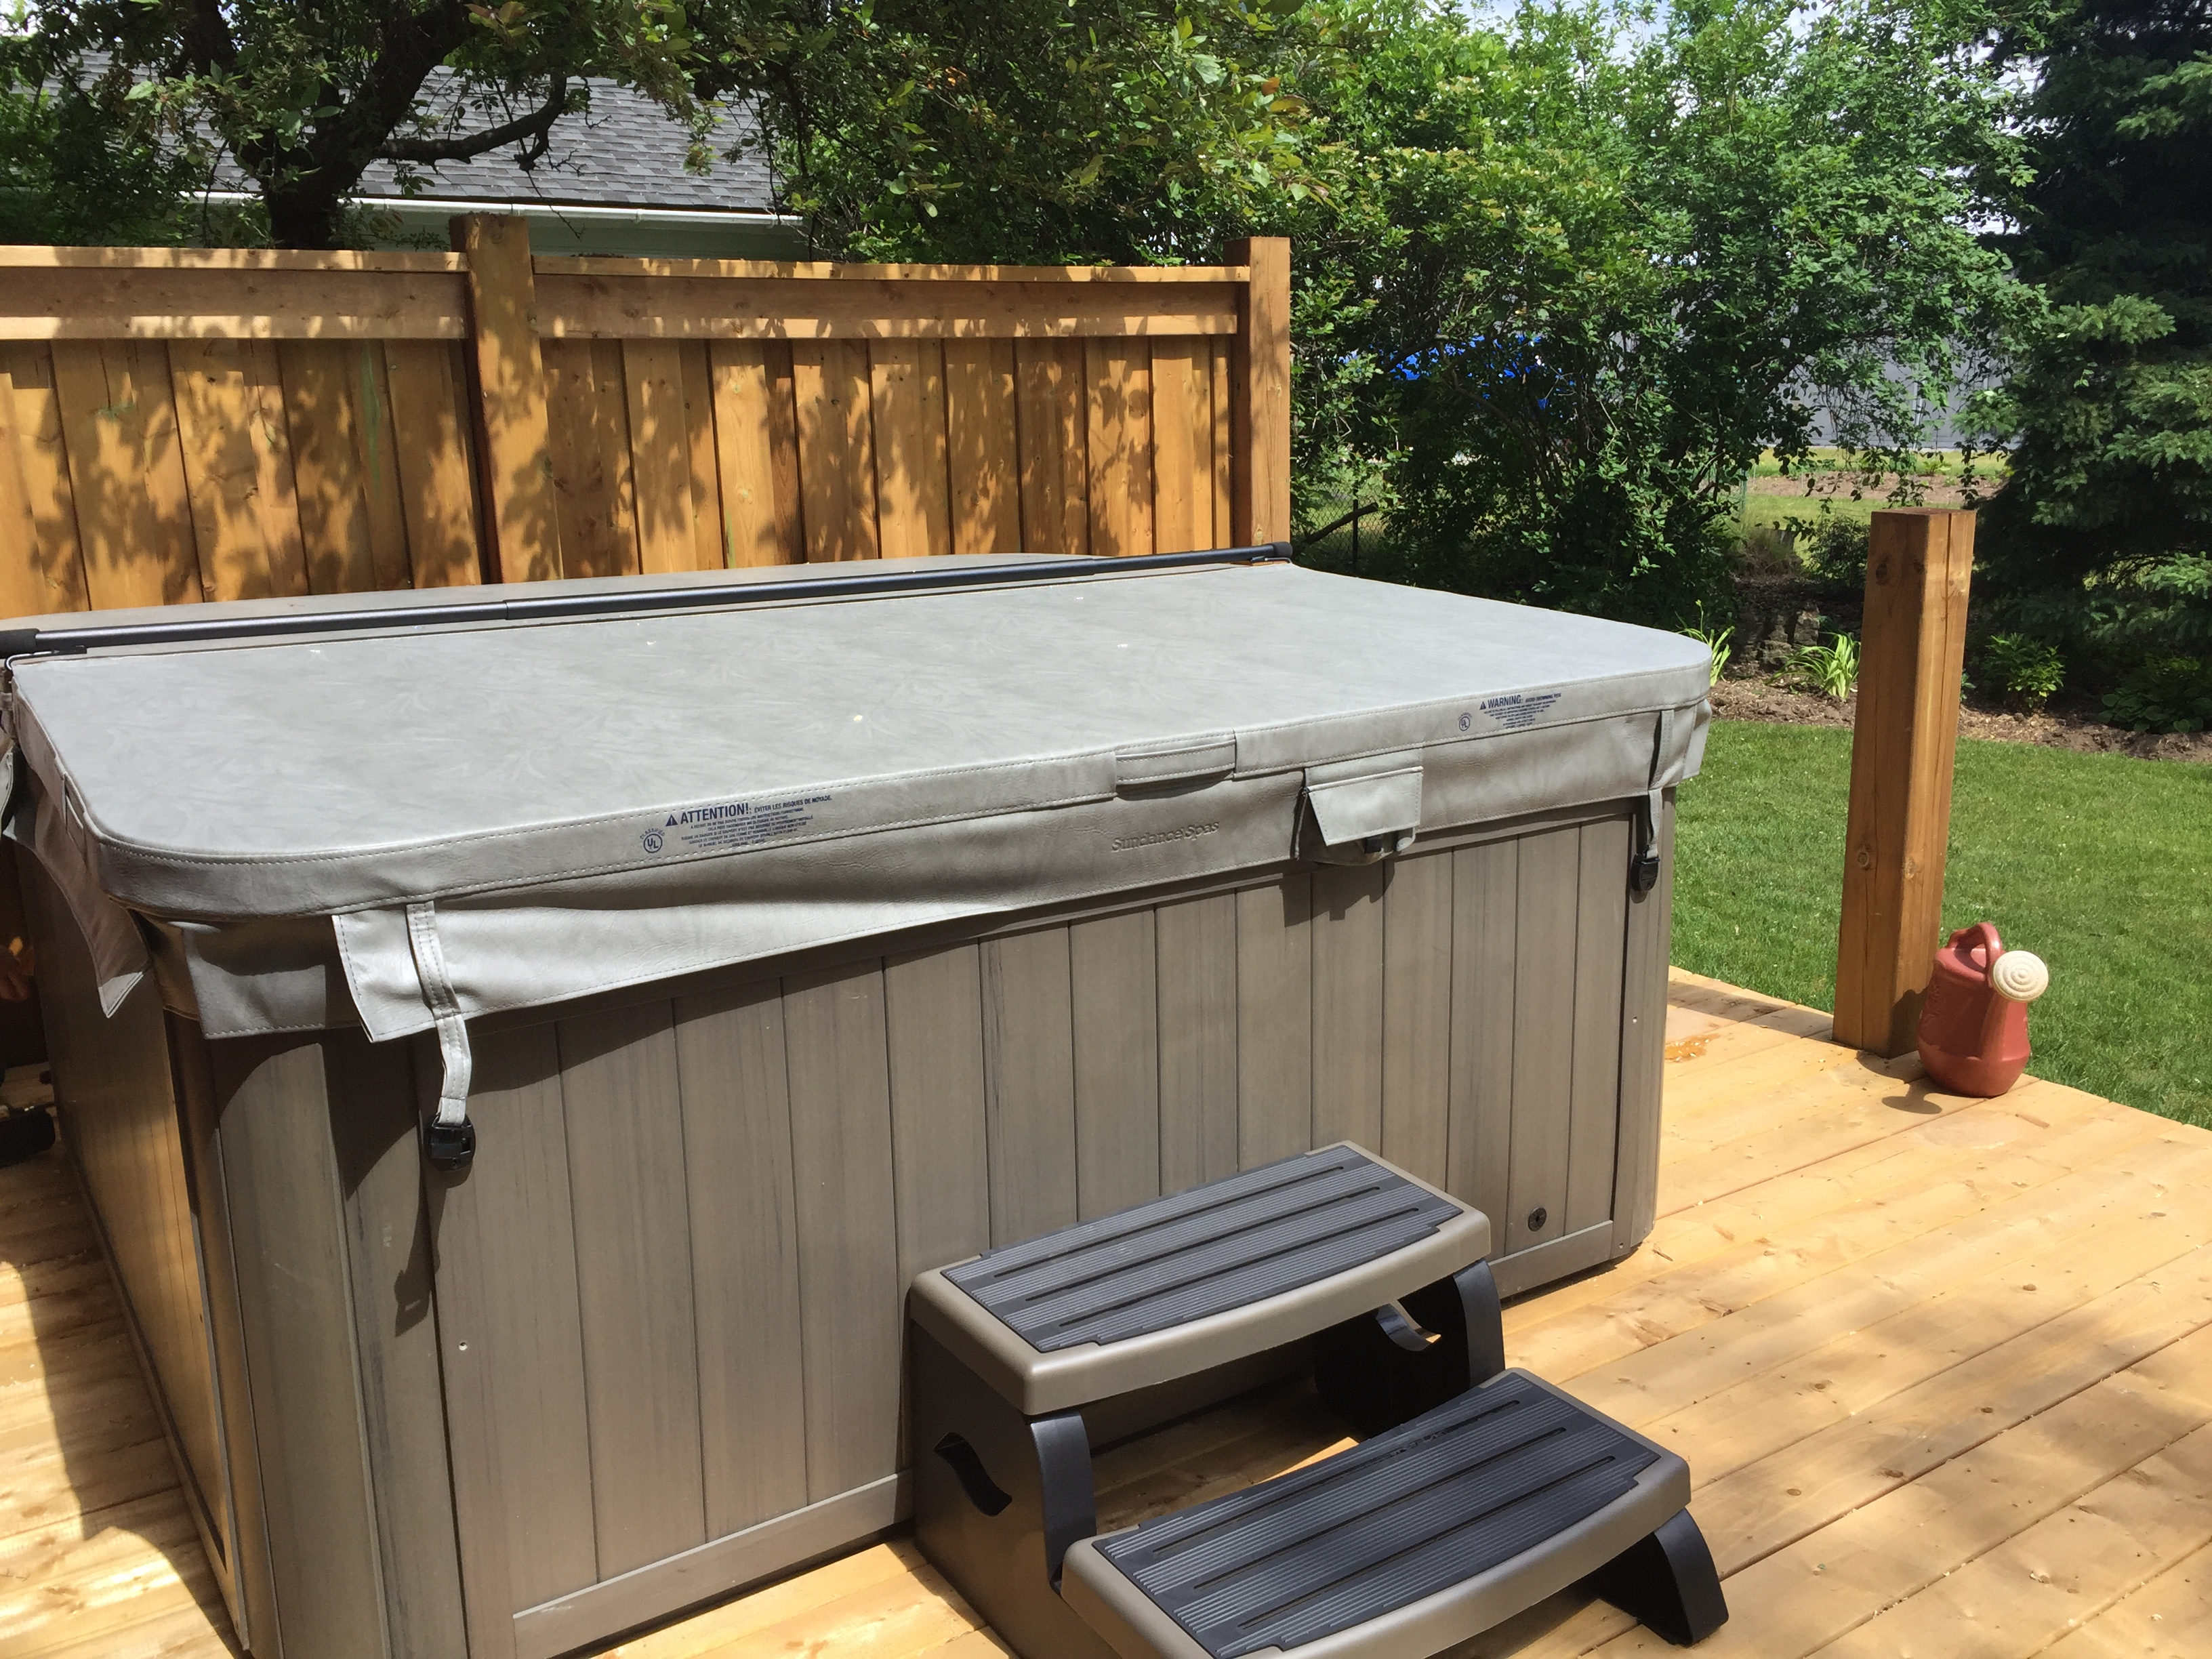 do hot decor deck removal to diy drunken how builds around in yourself with the build a home tub it